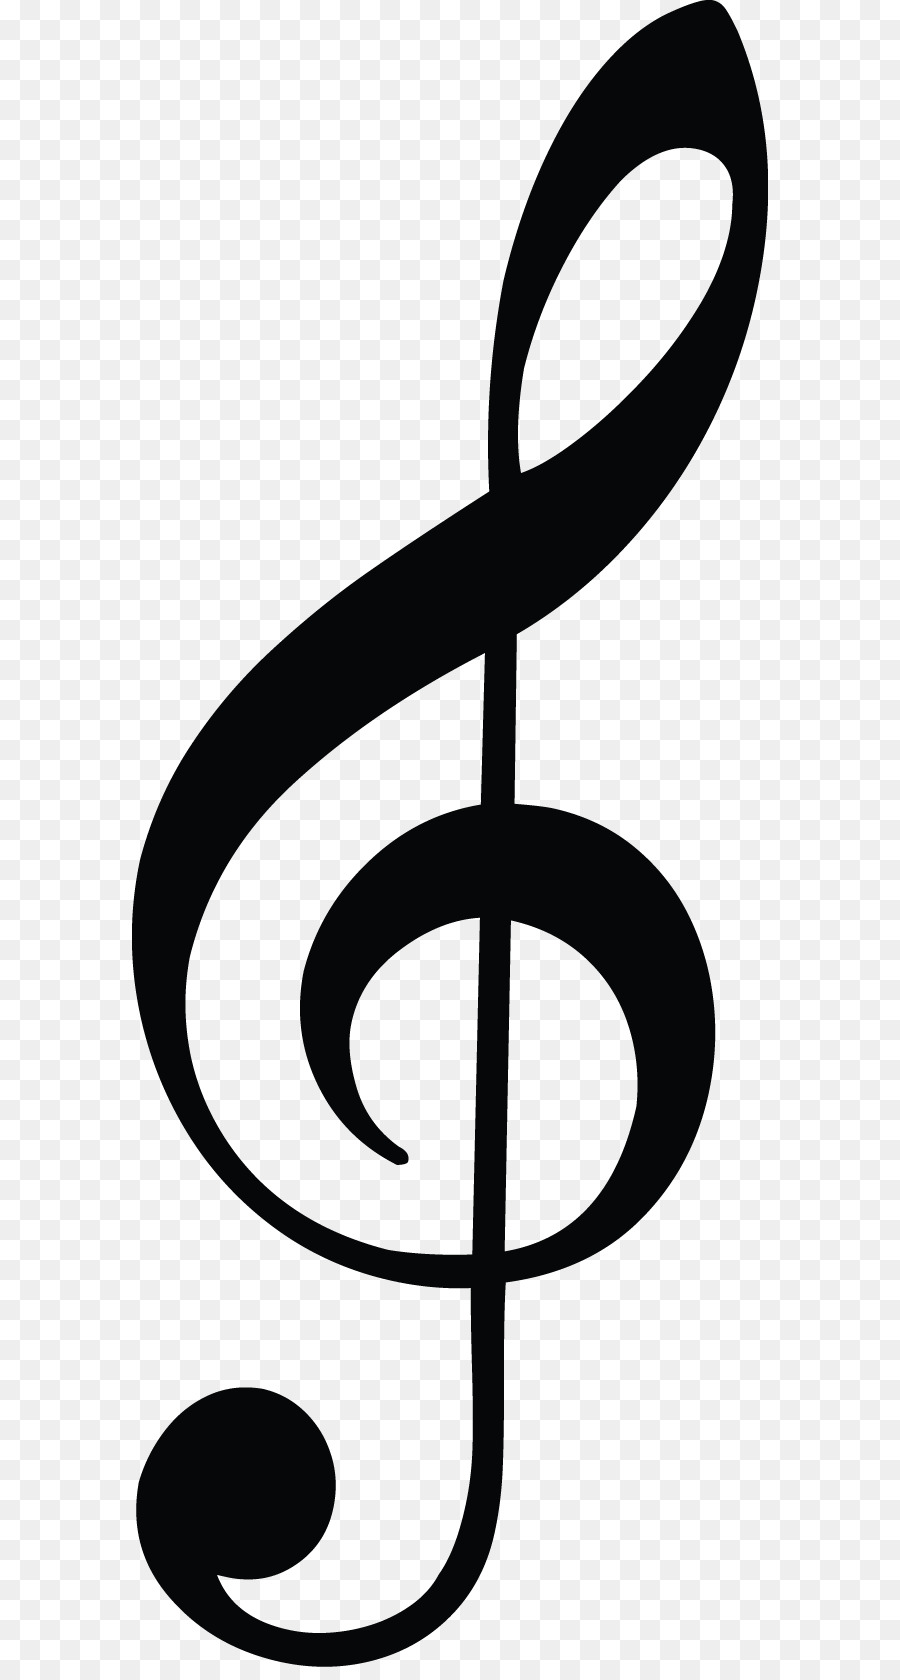 900x1680 Black And White Music Notes Clip Art Infinity